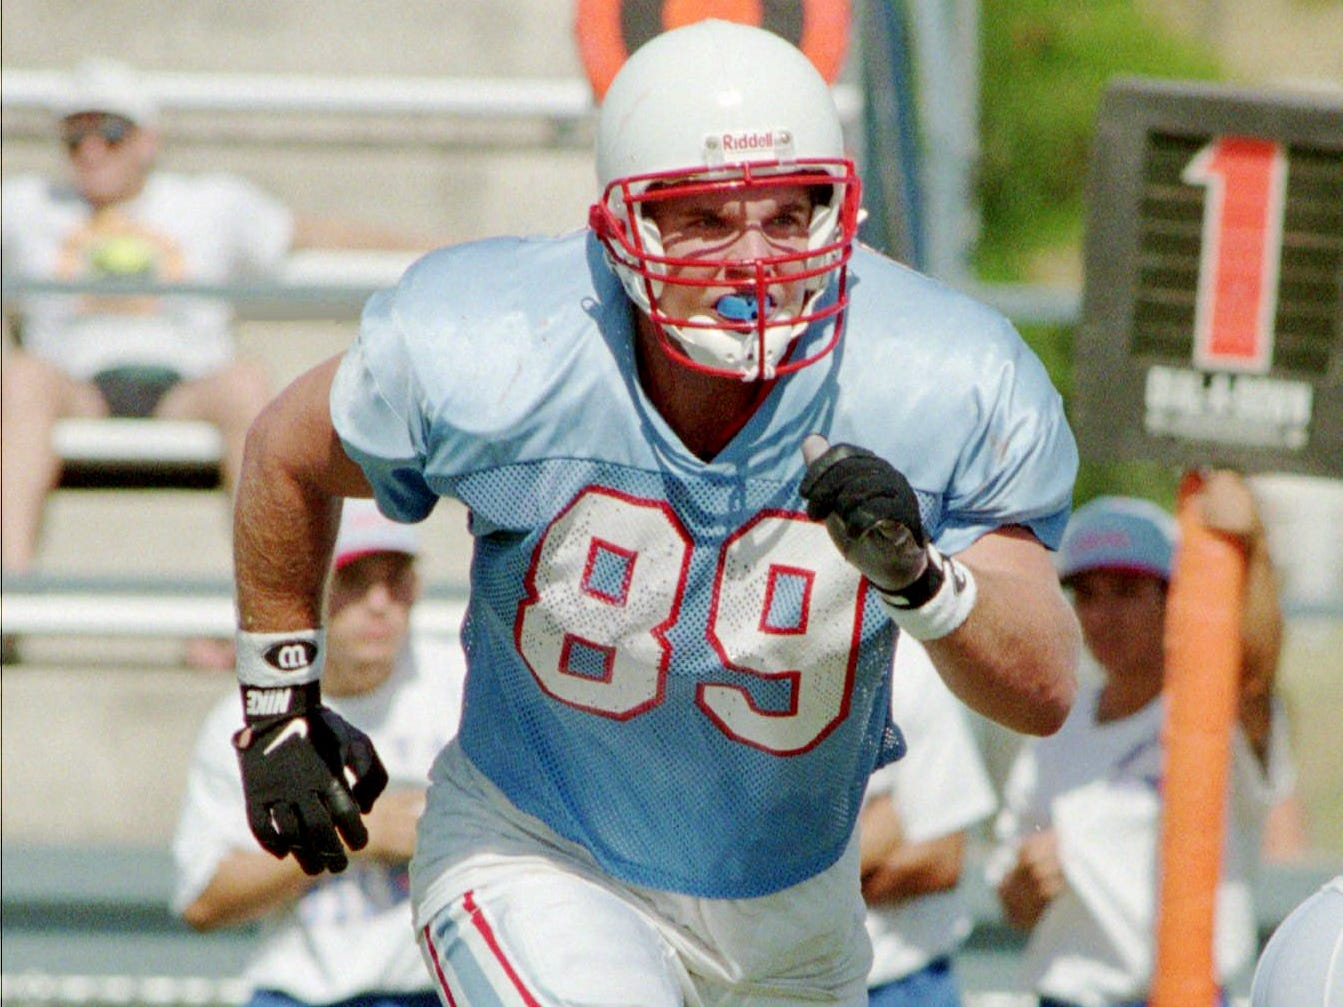 Houston Oilers tight end Frank Wycheck races across the backfield during workout July 21, 1996 in San Antonio, Texas. This year is expected to be the last Oilers training camp in San Antonio as they prepare to move to Nashville.